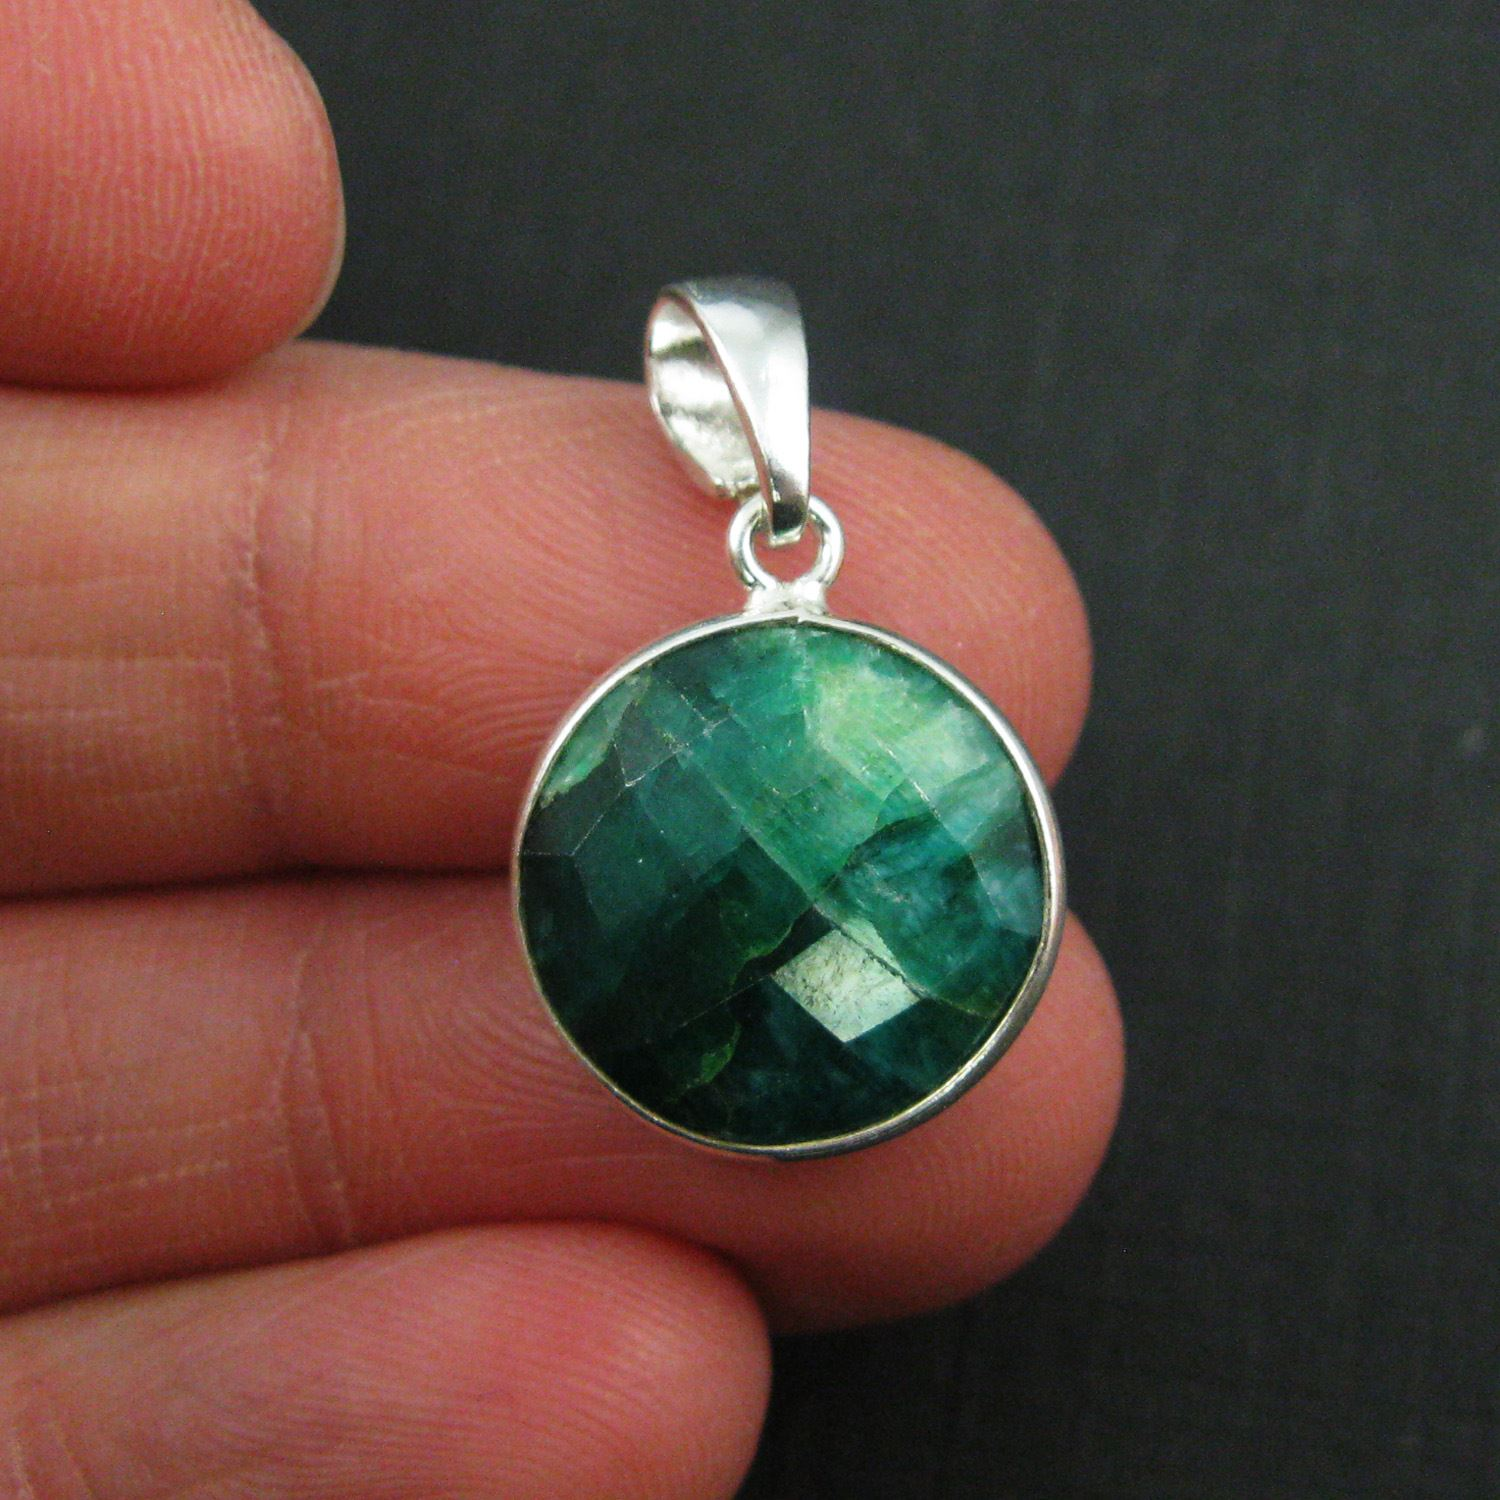 Bezel Gemstone Pendant with Bail - Sterling Silver Round Gem Pendant - Ready for Necklace - 24mm- Emerald Dyed